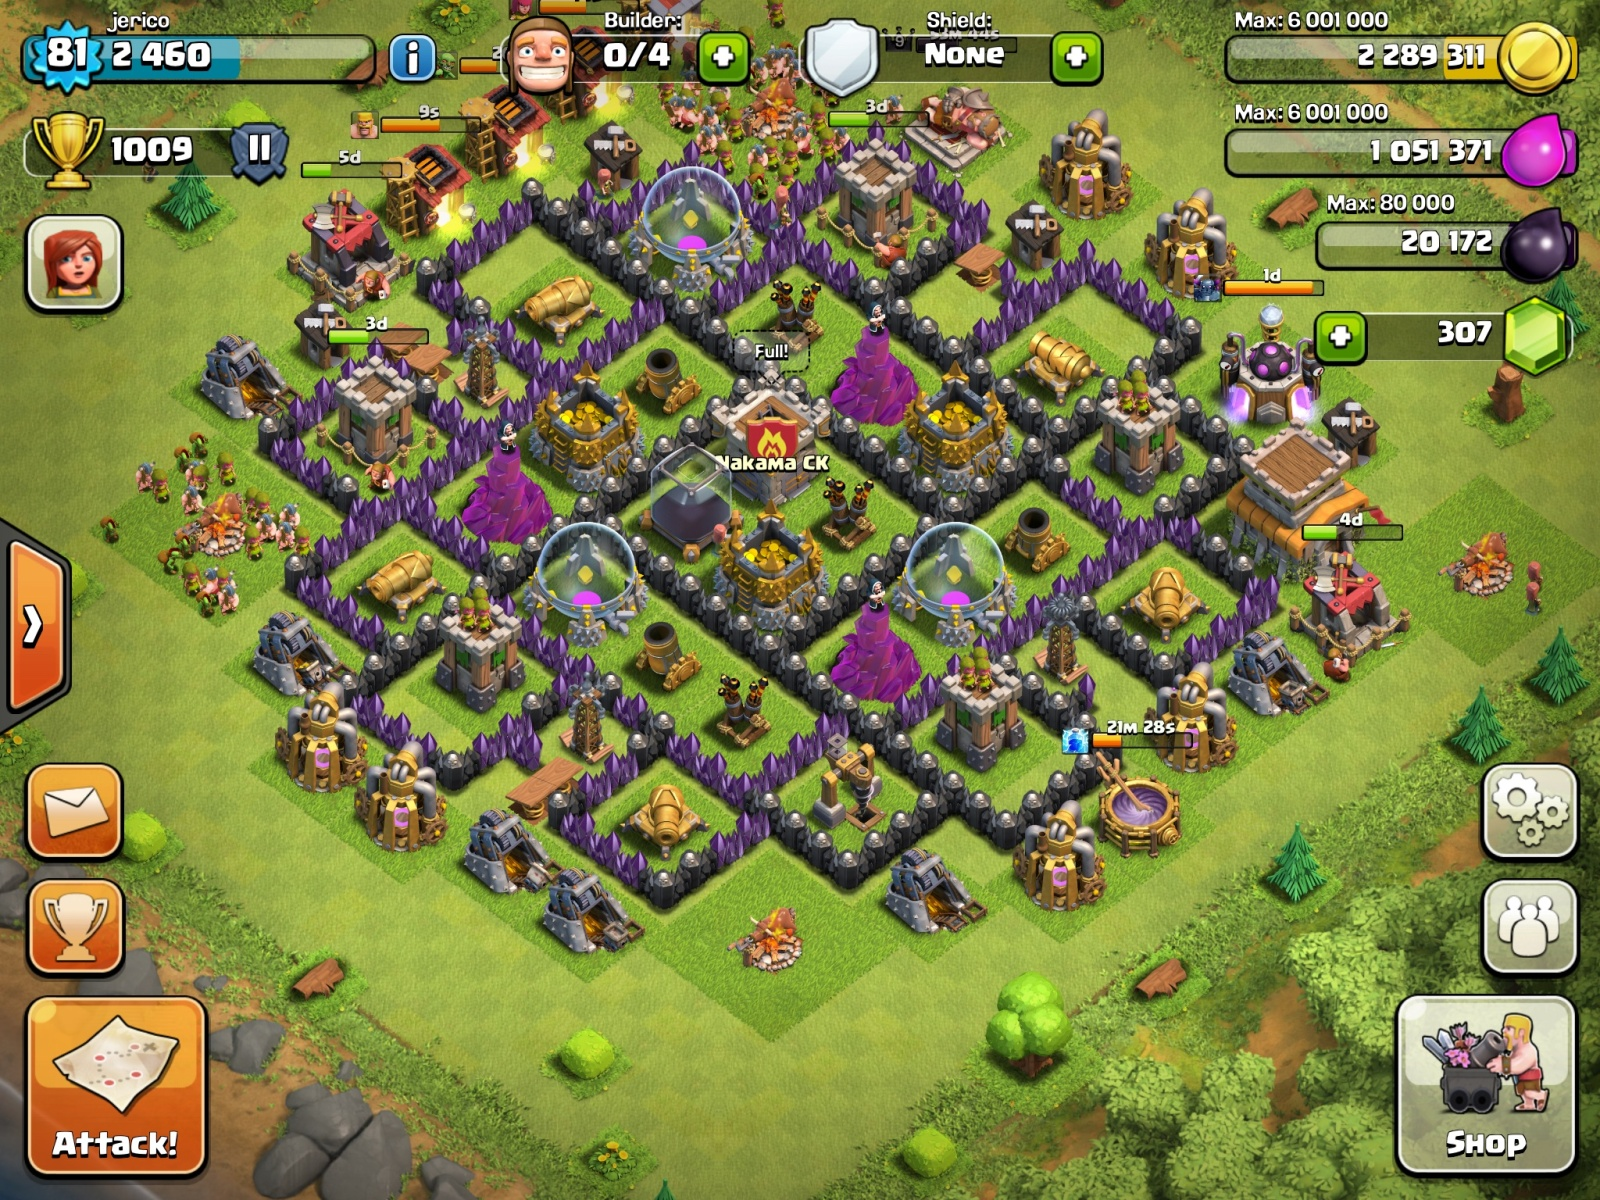 Details on how to farm in Clash of Clans